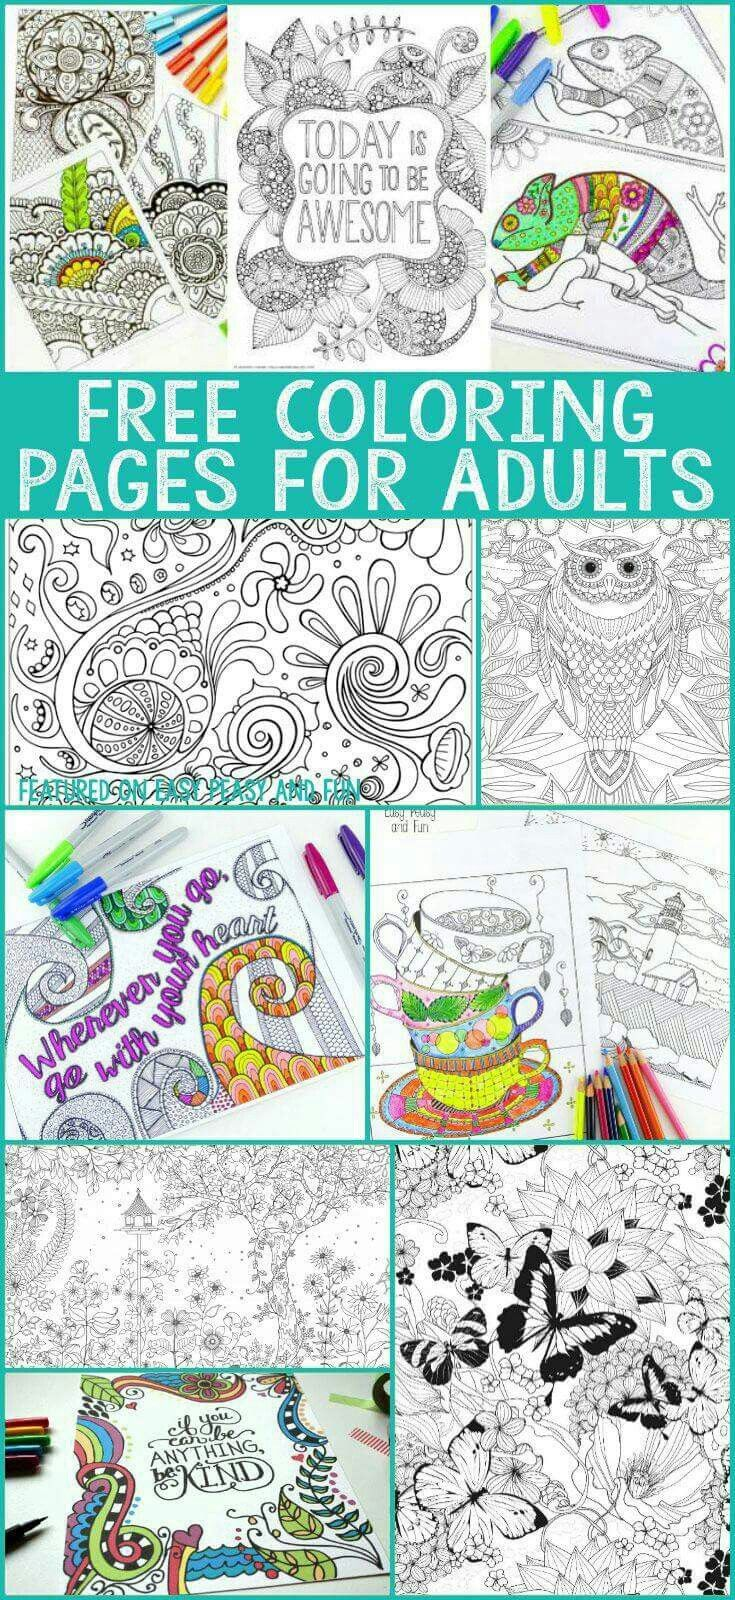 Lotus designs coloring book - Free Coloring Pages For Adults